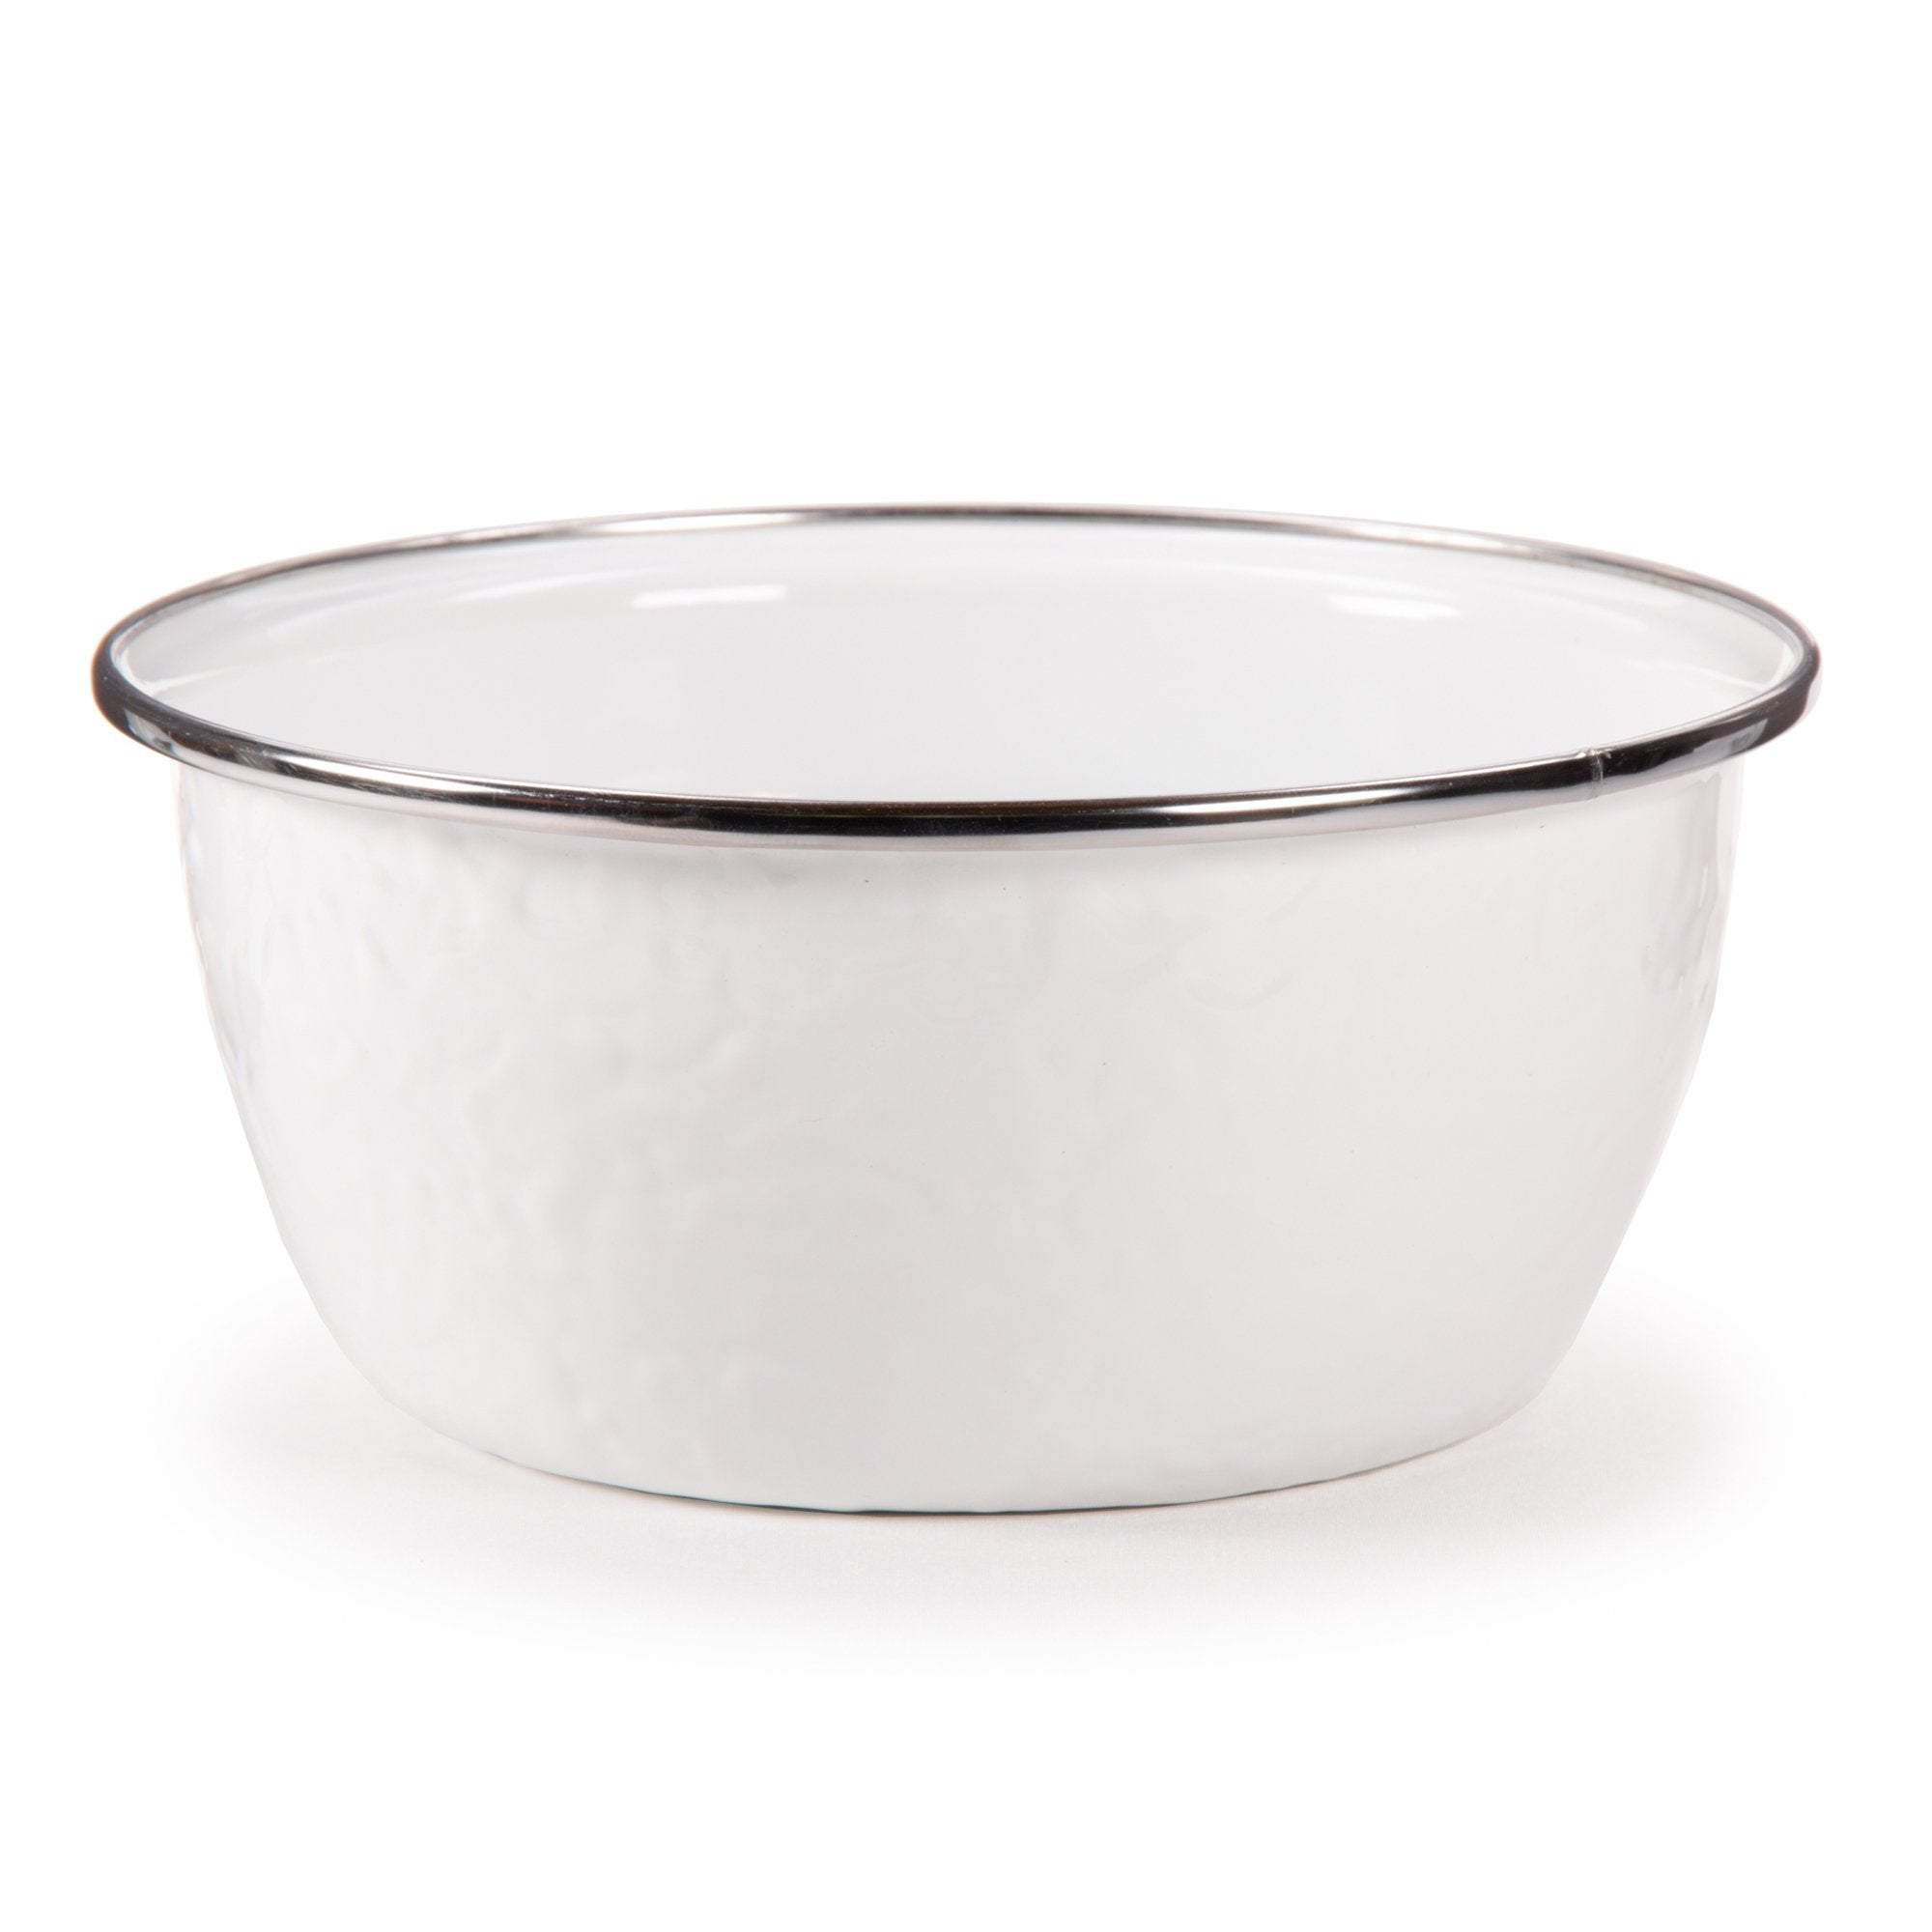 WW61S4 - Set of 4 Solid White Salad Bowls Product 1